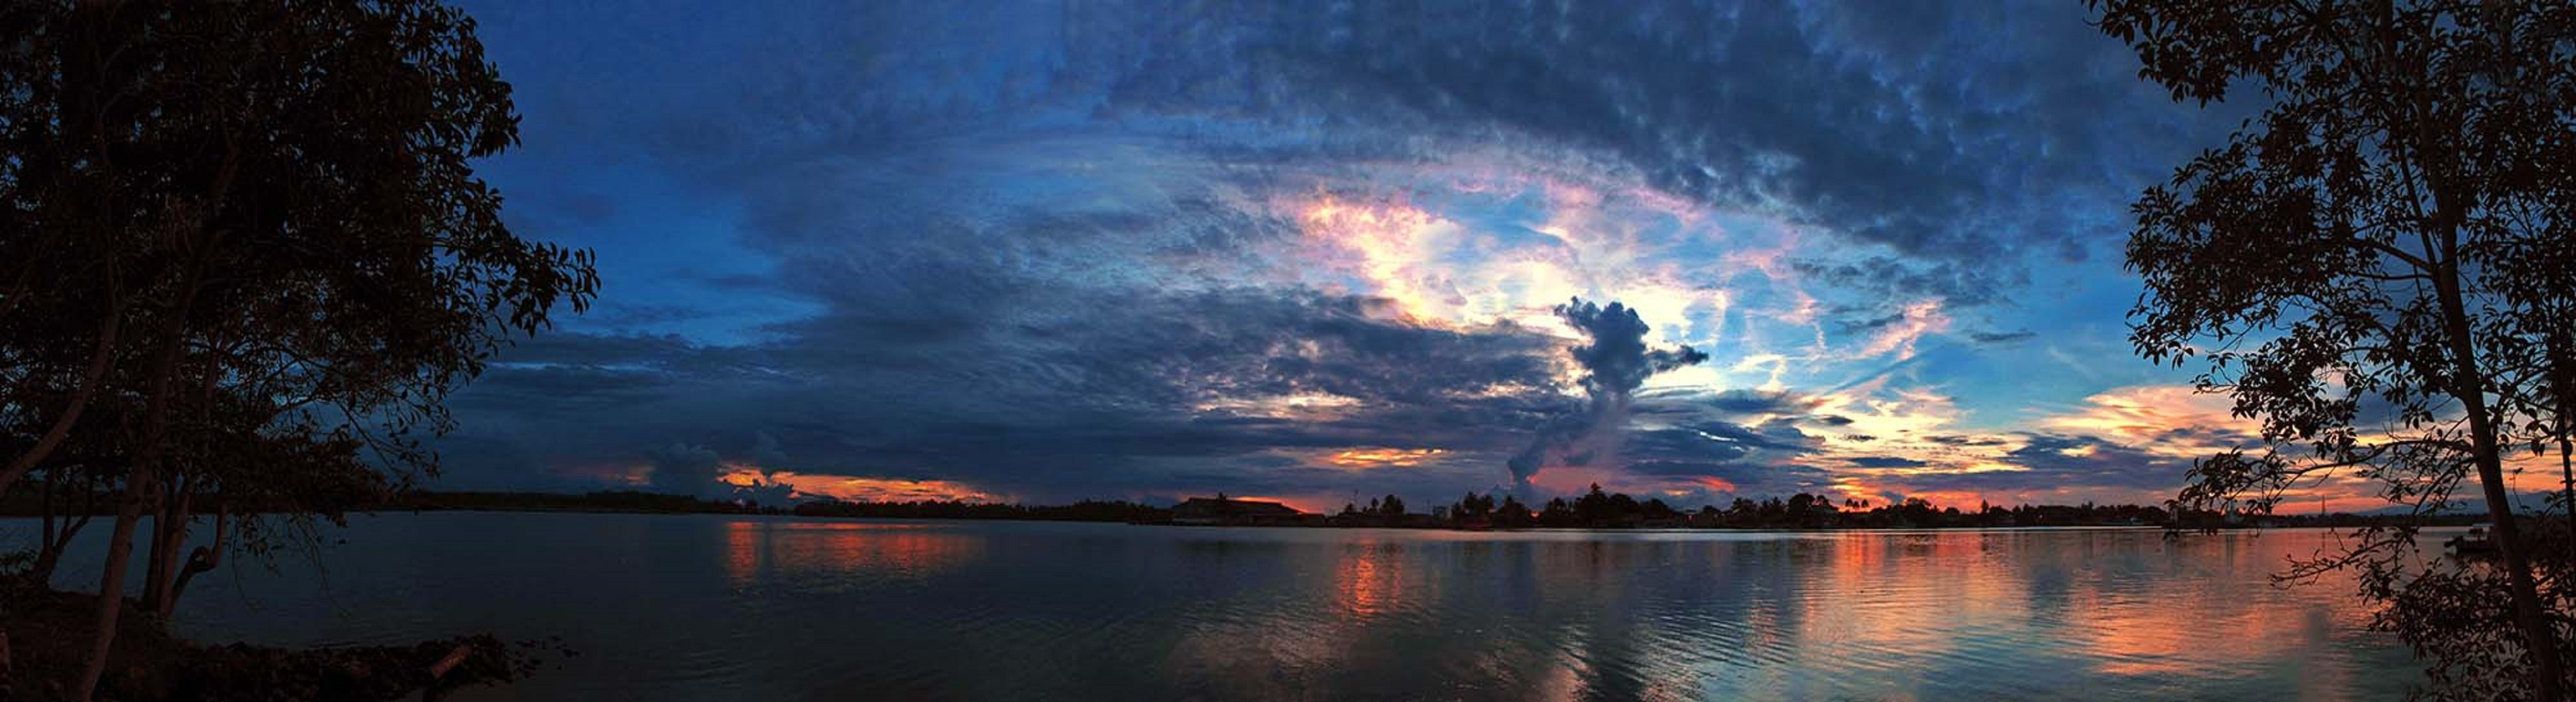 Panorama Dual Monitor Water Sky Clouds West Of The Sun Wallpaper